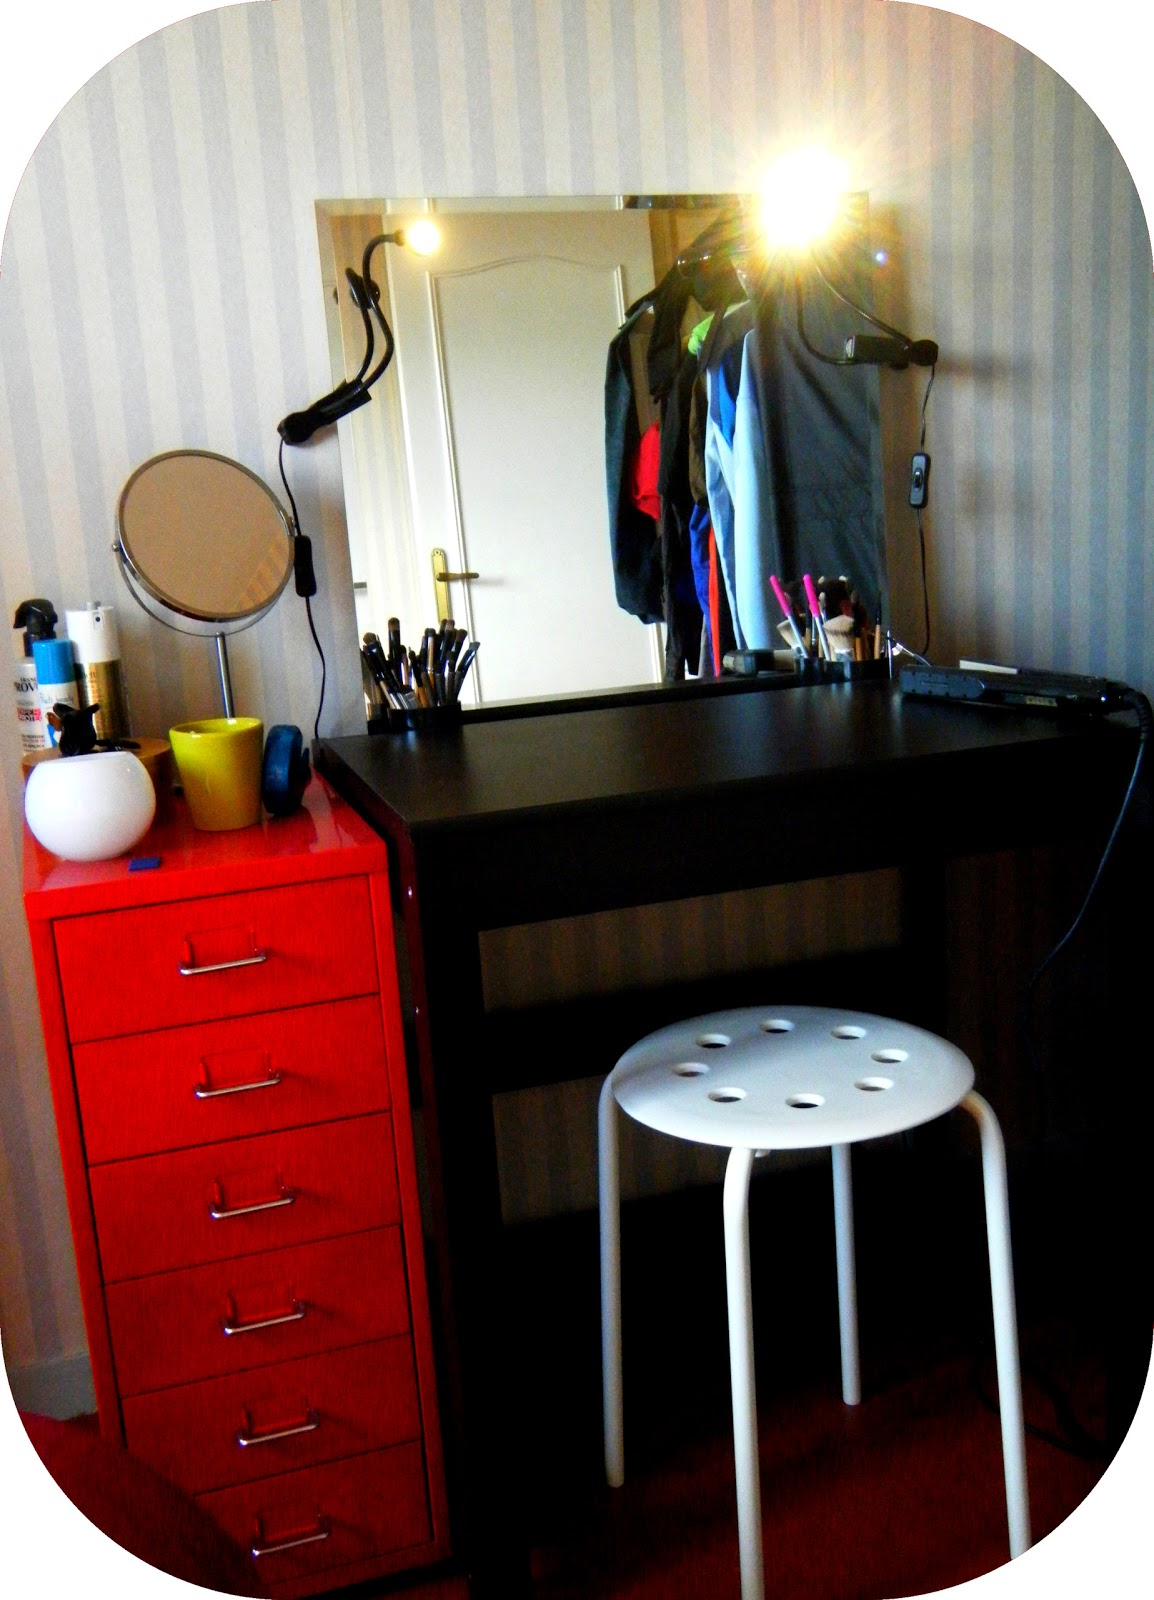 coiffeuse avec miroir ikea good with coiffeuse avec miroir ikea gallery of coiffeuse avec. Black Bedroom Furniture Sets. Home Design Ideas